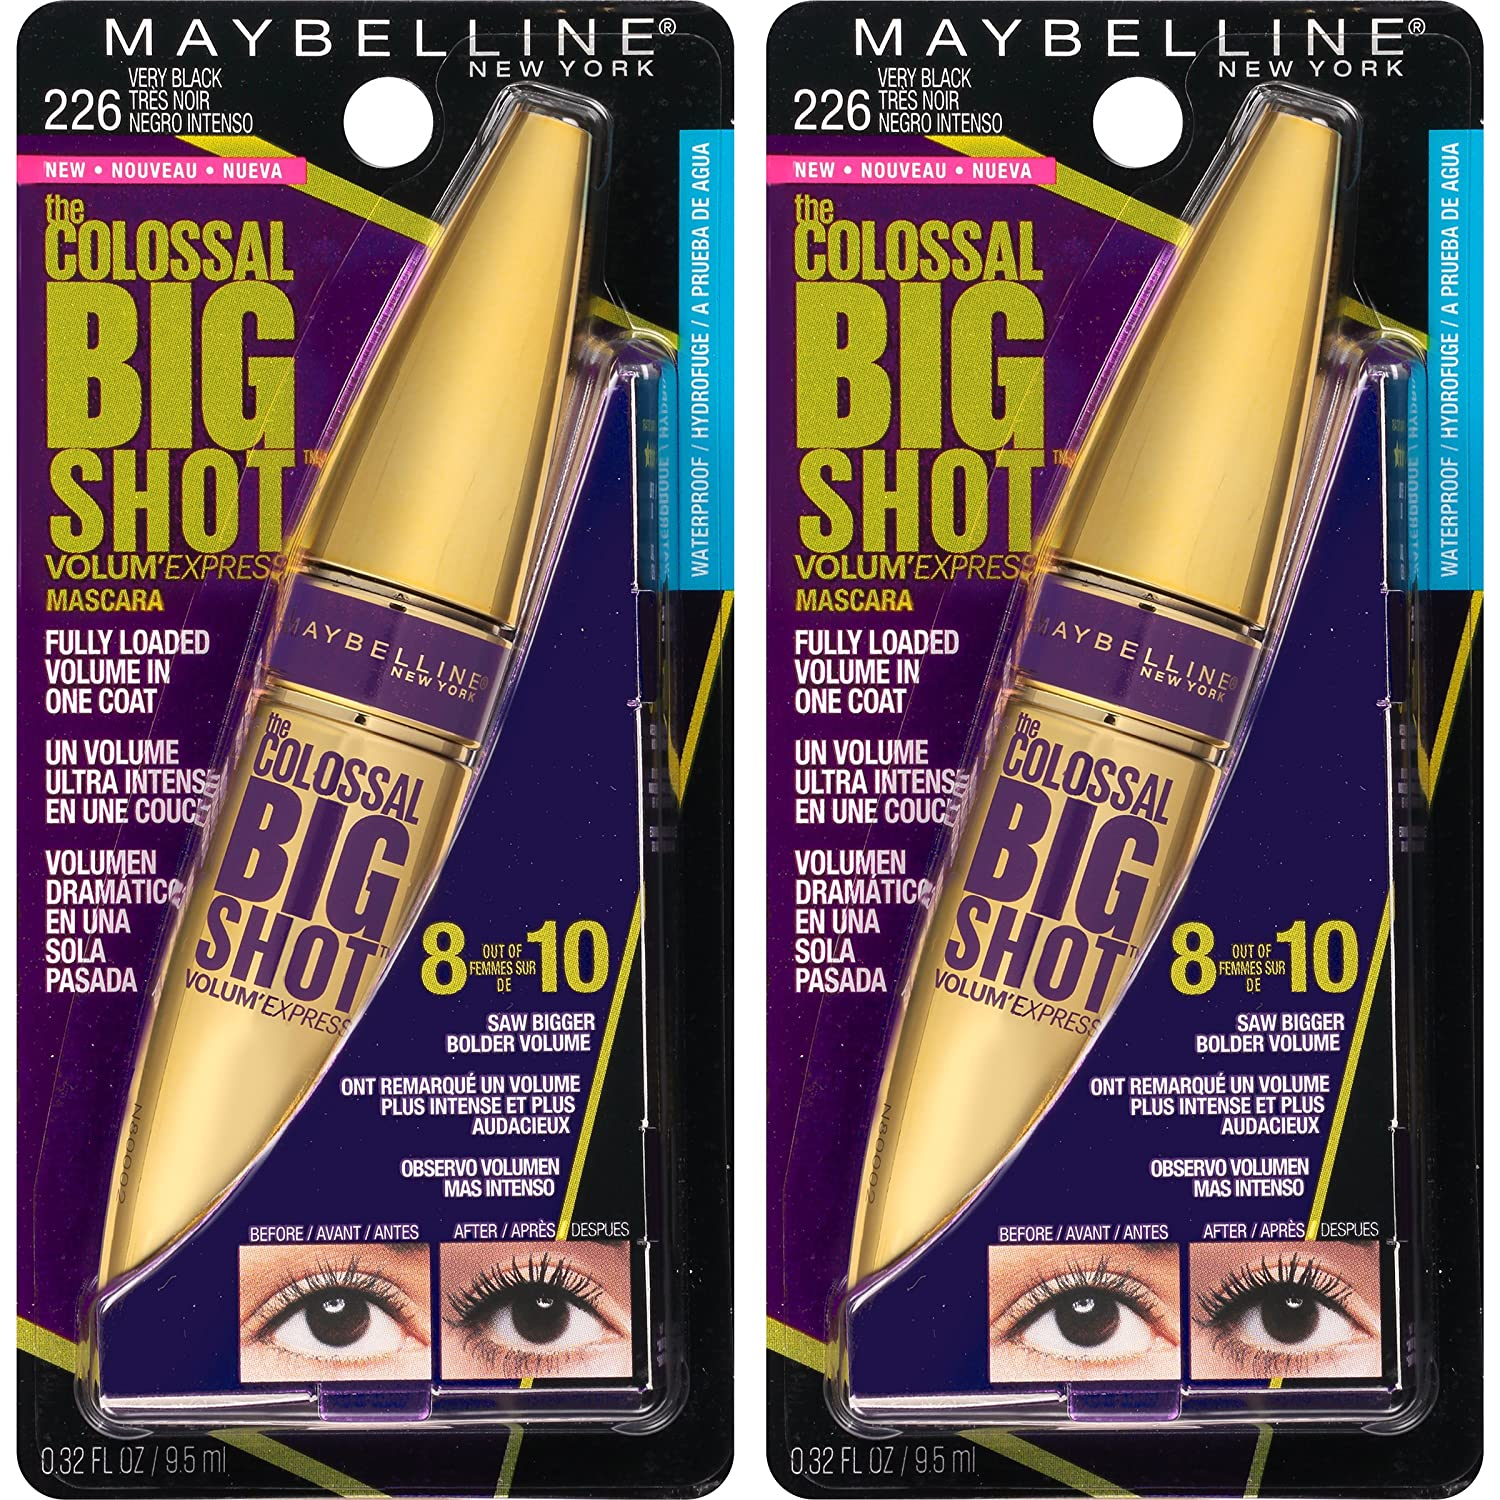 WHOLESALE MAYBELLINE VOLUM EXPRESS THE COLOSSAL BIG SHOT MASCARA 0.31 OZ (PACK OF 2) - VERY BLACK 226 - 48 PIECE LOT